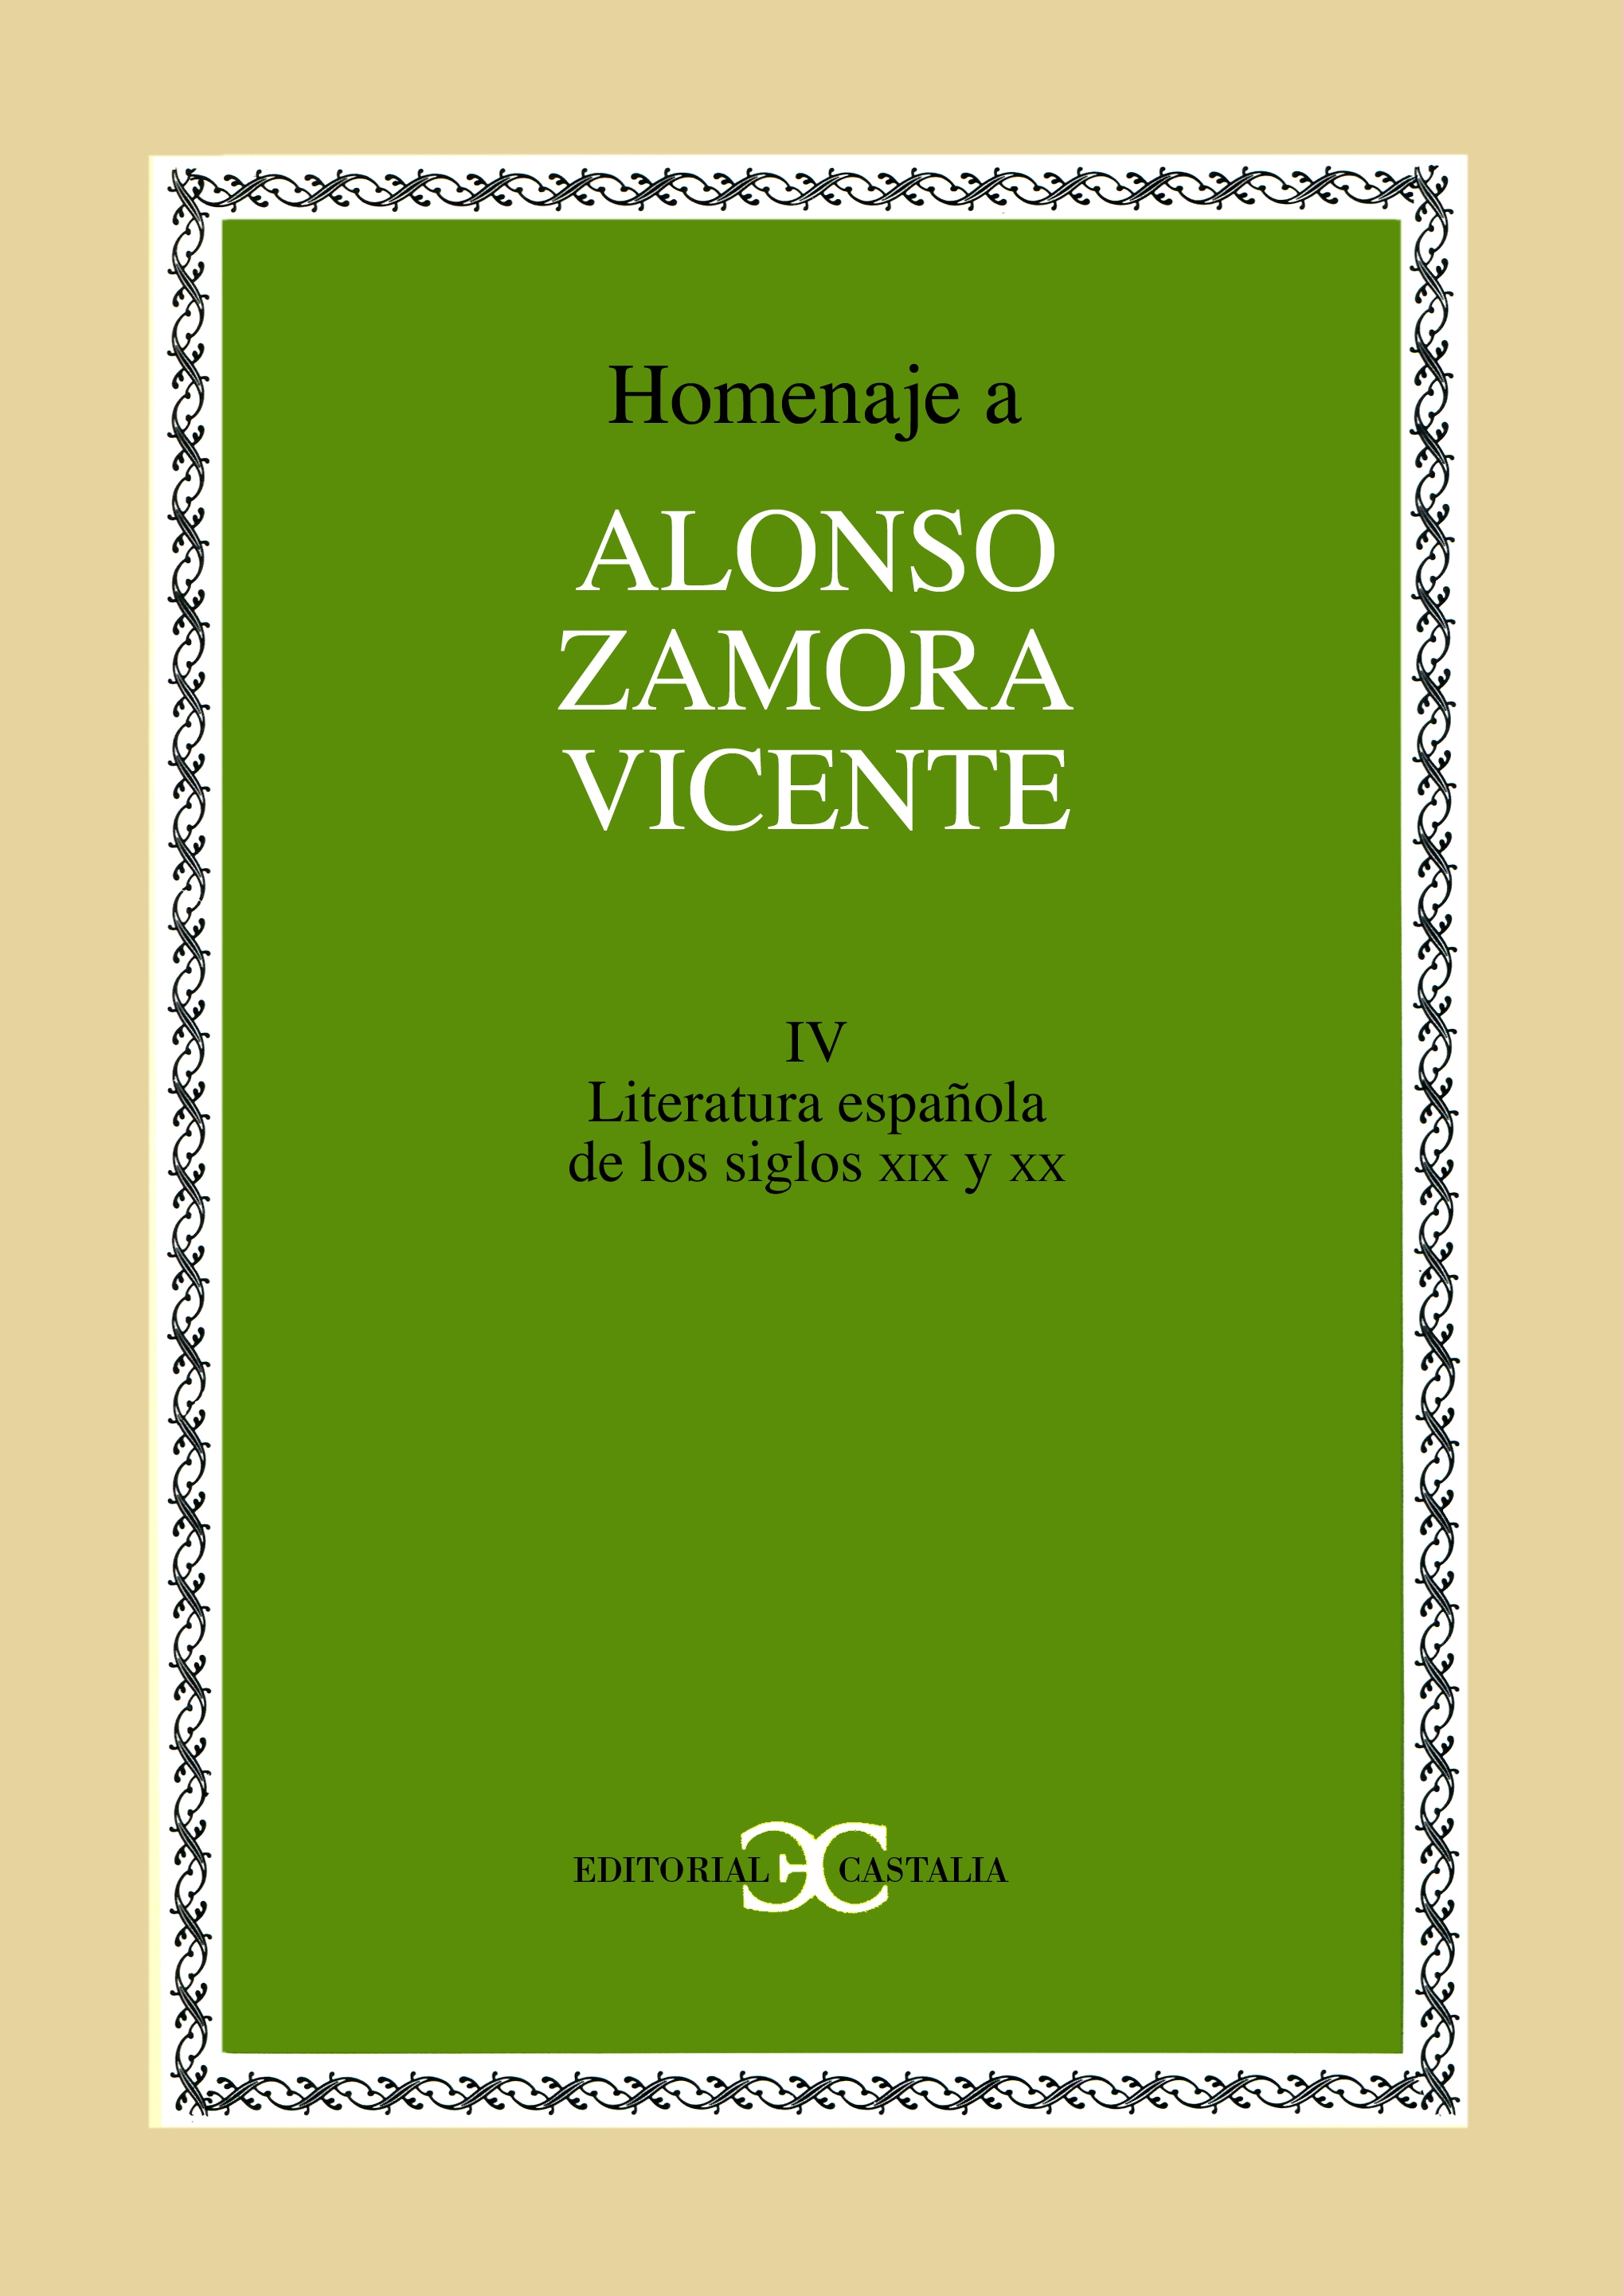 Homenaje a Alonso Zamora Vicente. Volumen IV